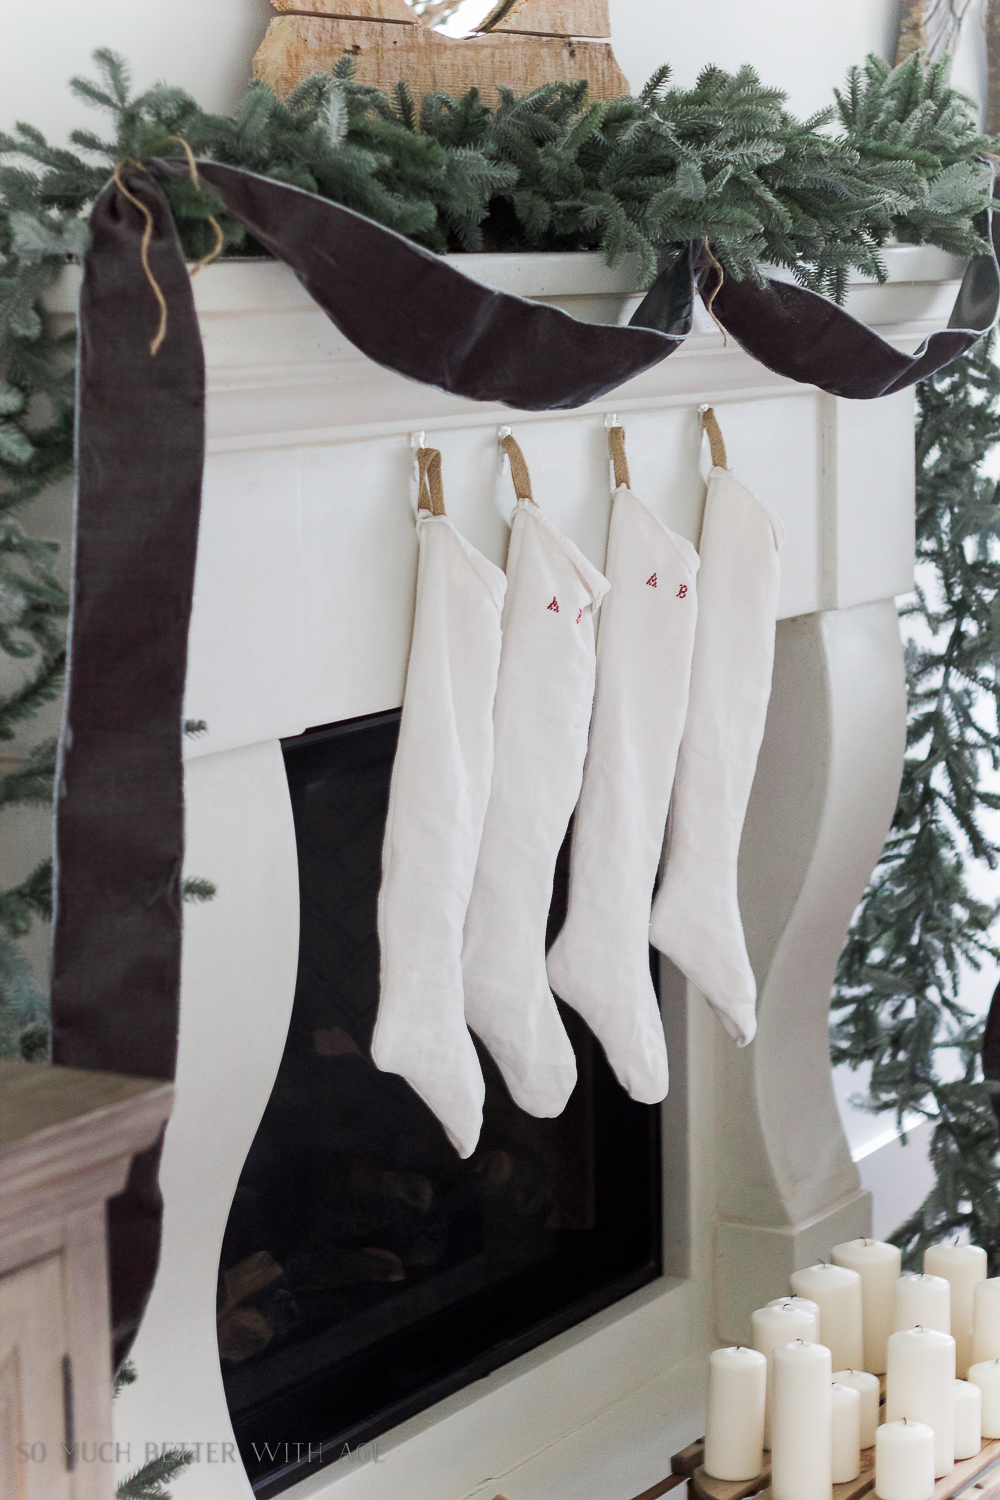 European-looking/vintage Christmas stockings sewing tutorial and free downloadable pattern / the handmade looking stockings - So Much Better With Age